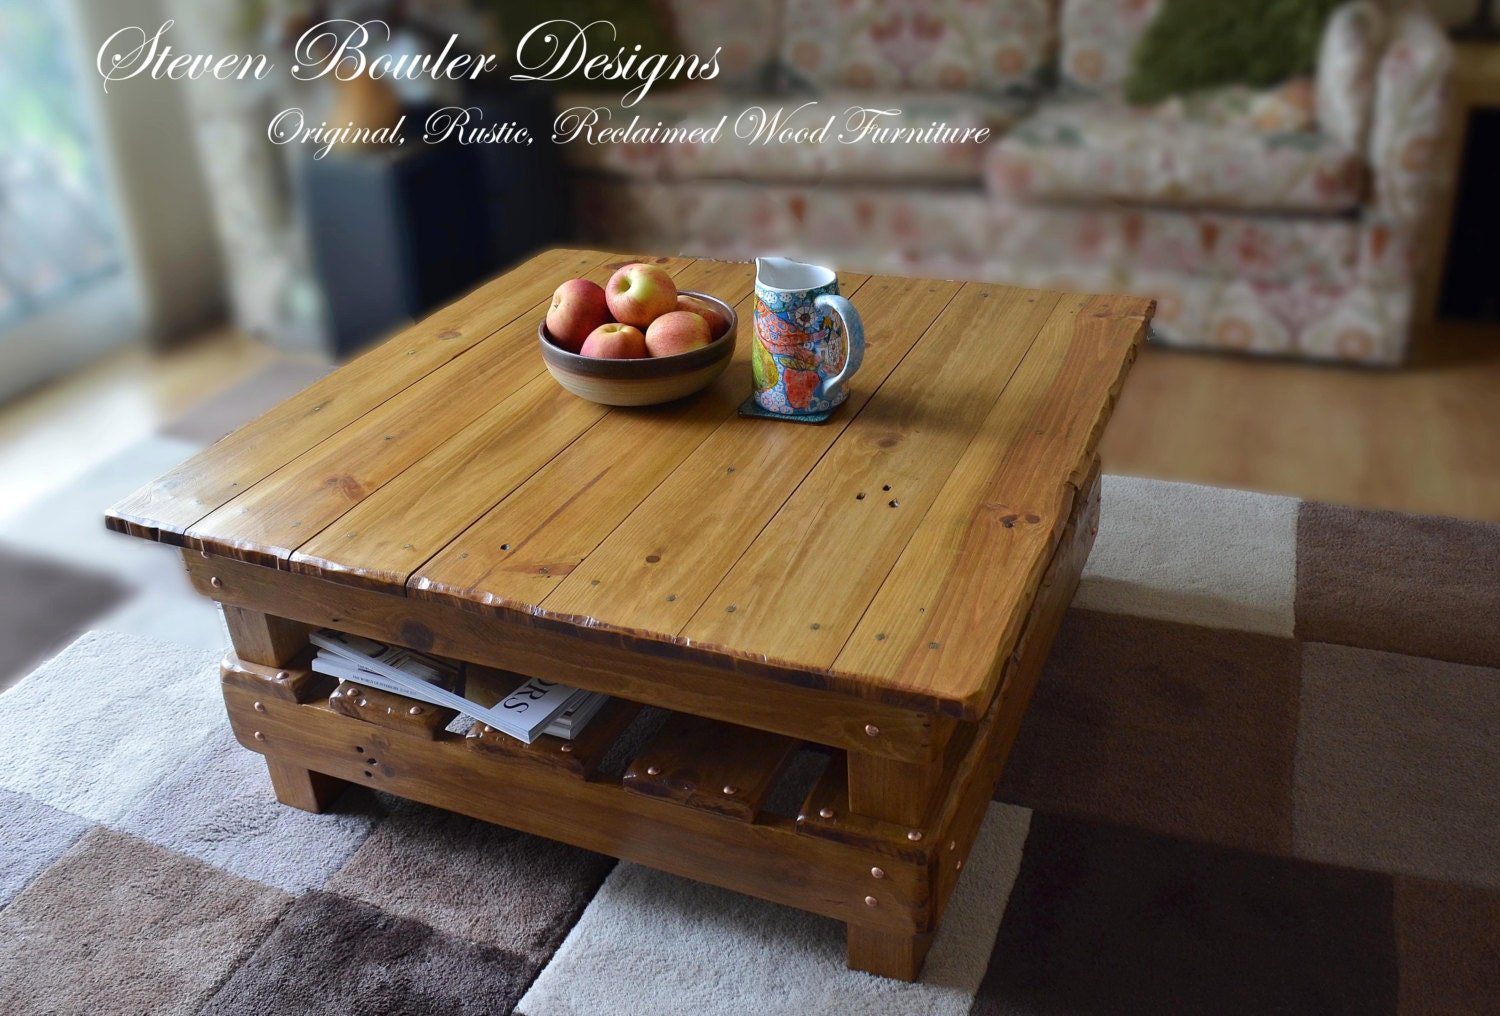 Handcrafted to Order Square Rustic Reclaimed Wood Coffee Table in Warm Light Oak Stain  Decorative Copper Tacks with Under Shelf Storage